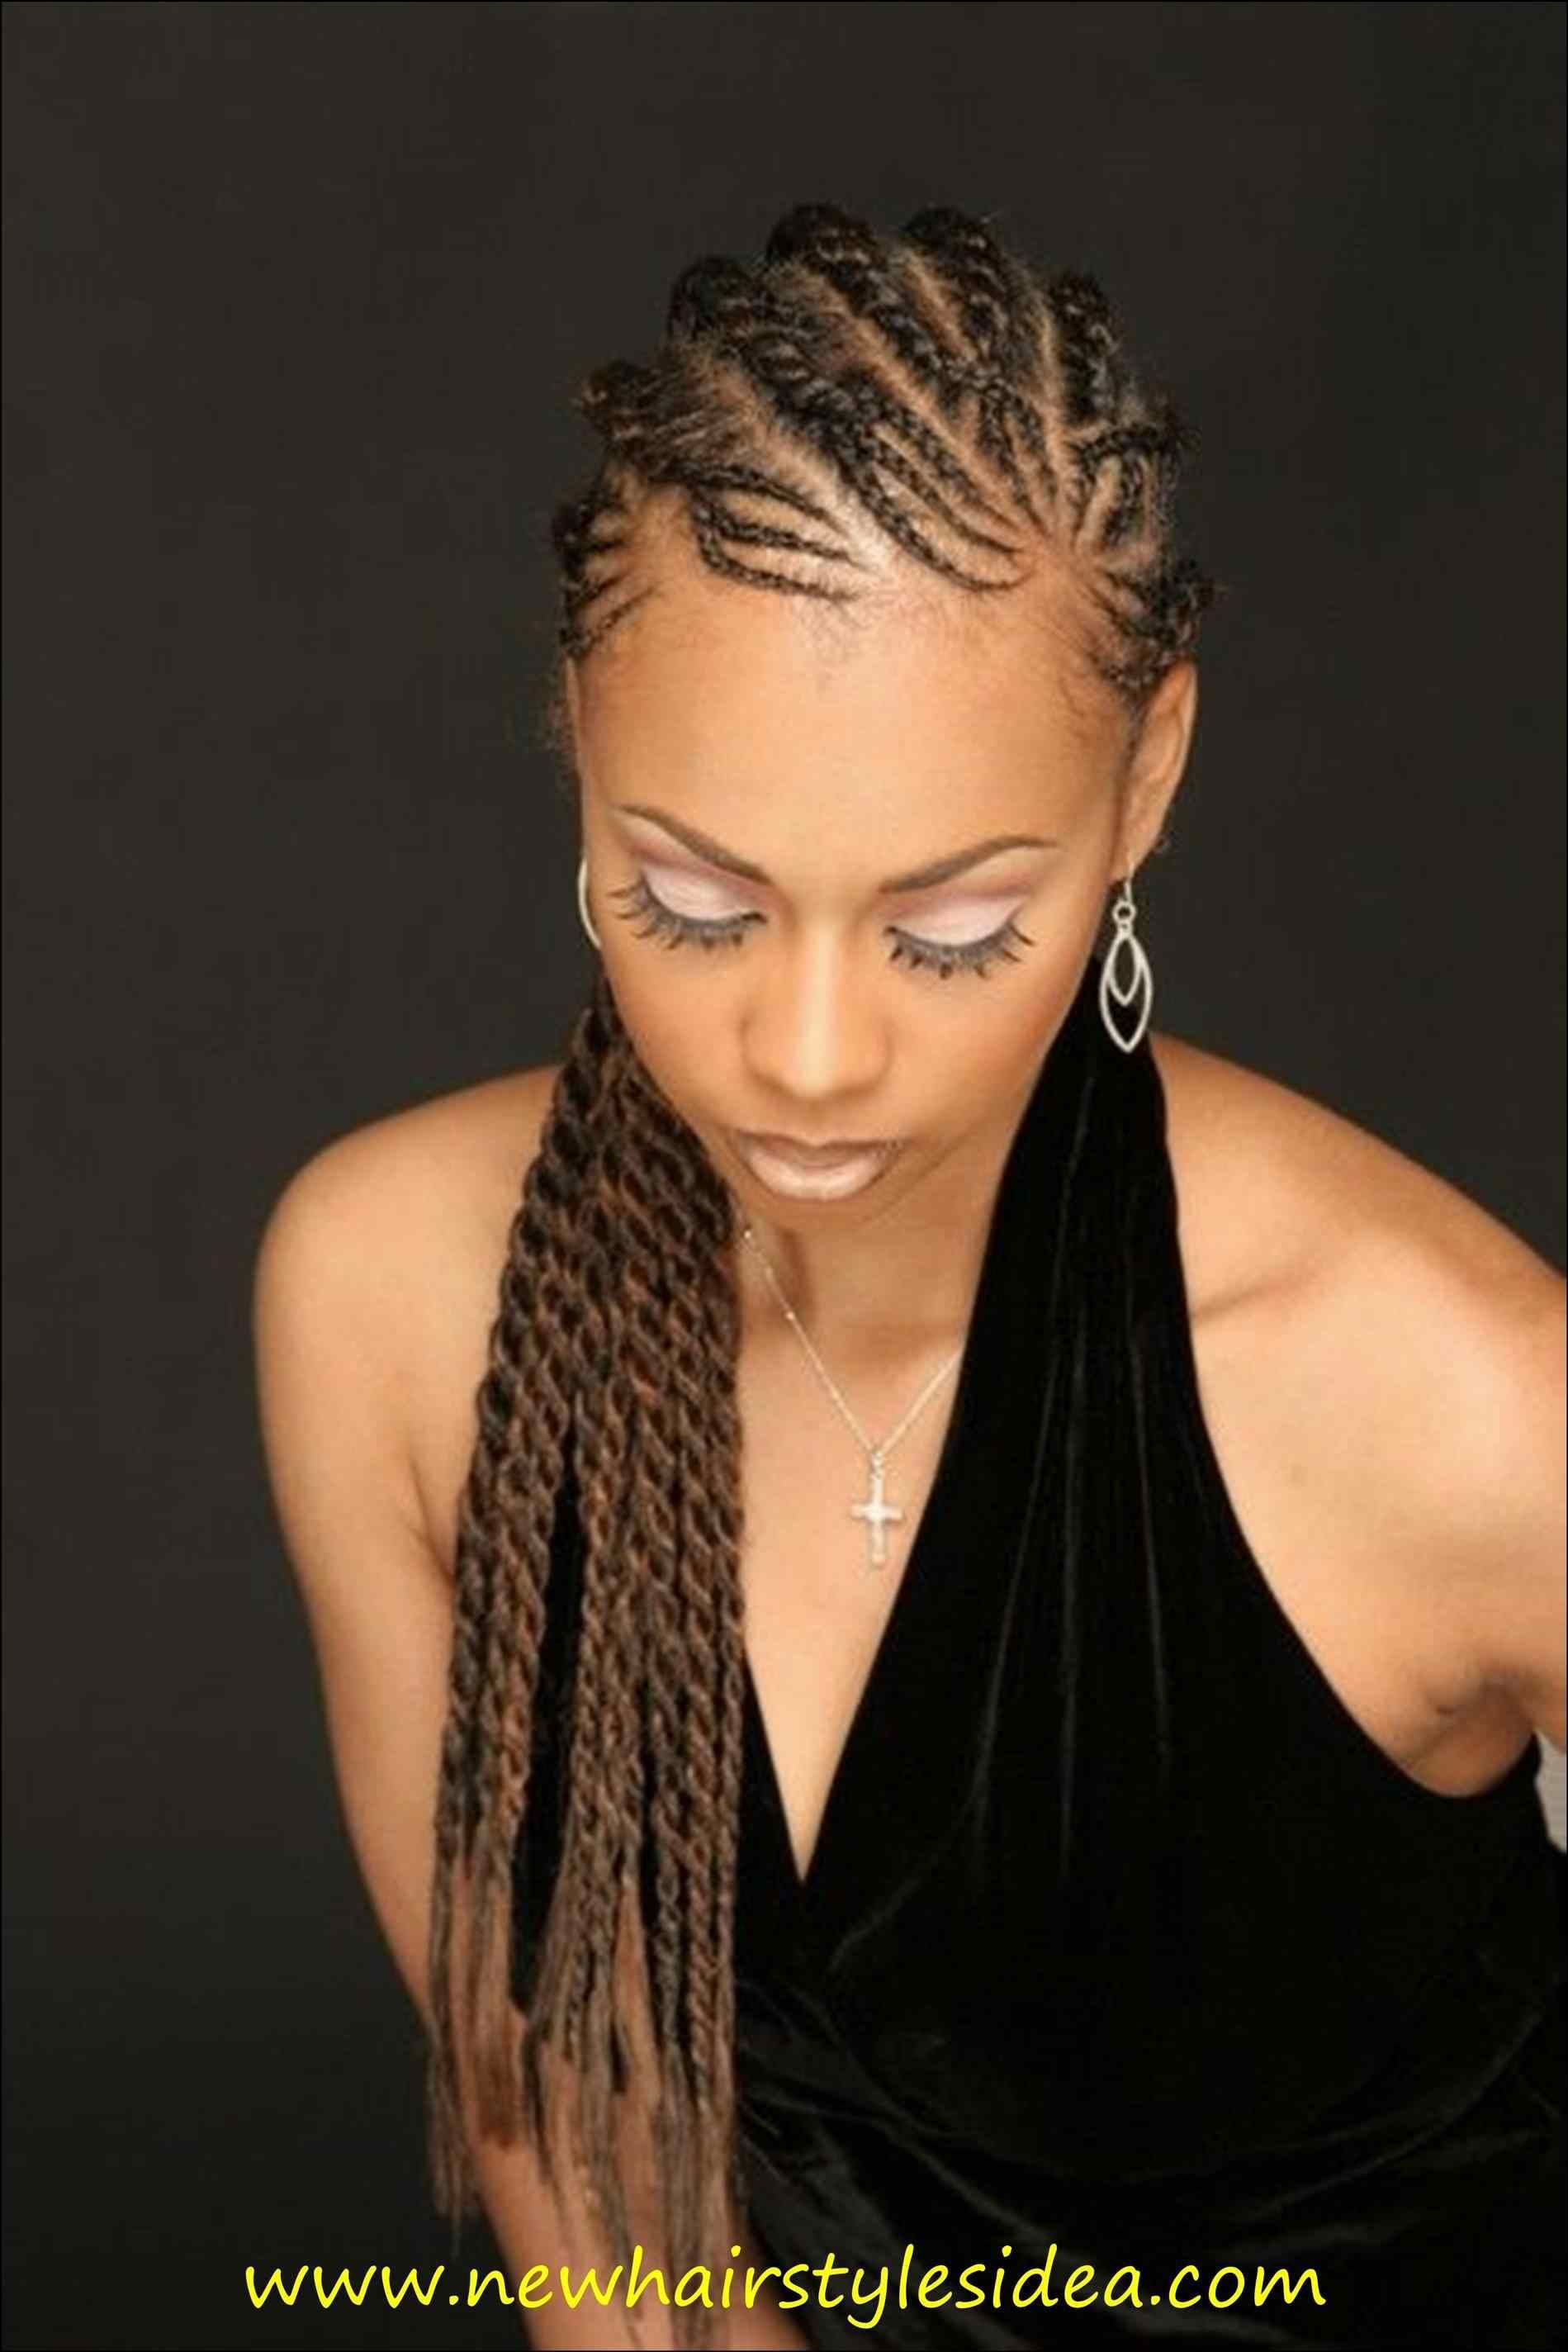 Alicia Keys Braids Hairstyles Cute Hairstyle Bestcoolcom Alicia Alicia Keys Hairstyle Braids Keys Hairs Twist Hairstyles Braided Hairstyles Natural Hair Styles